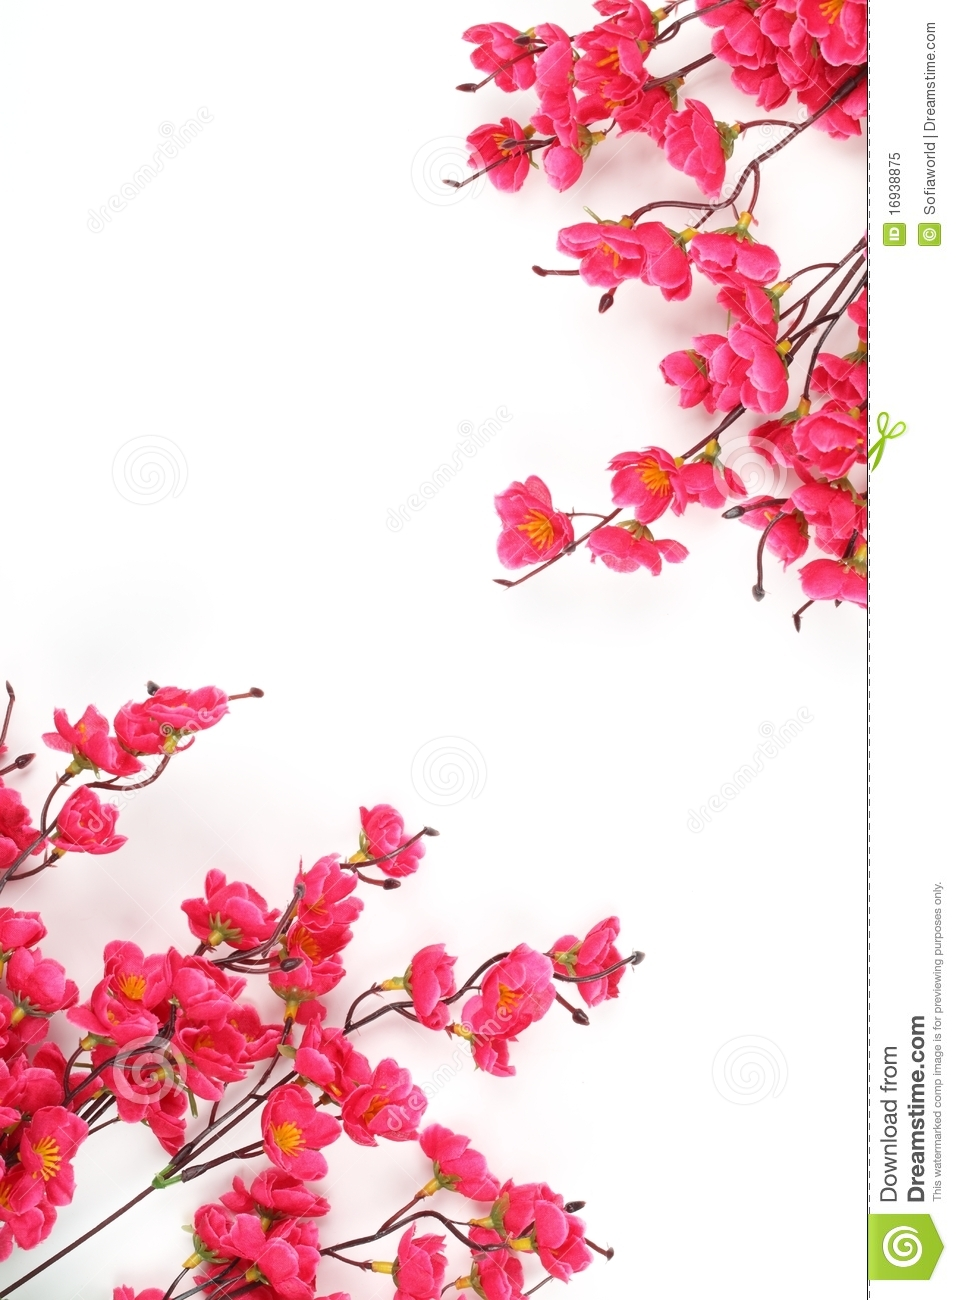 Chinese New Year Decoration Stock Image - Image of image ...